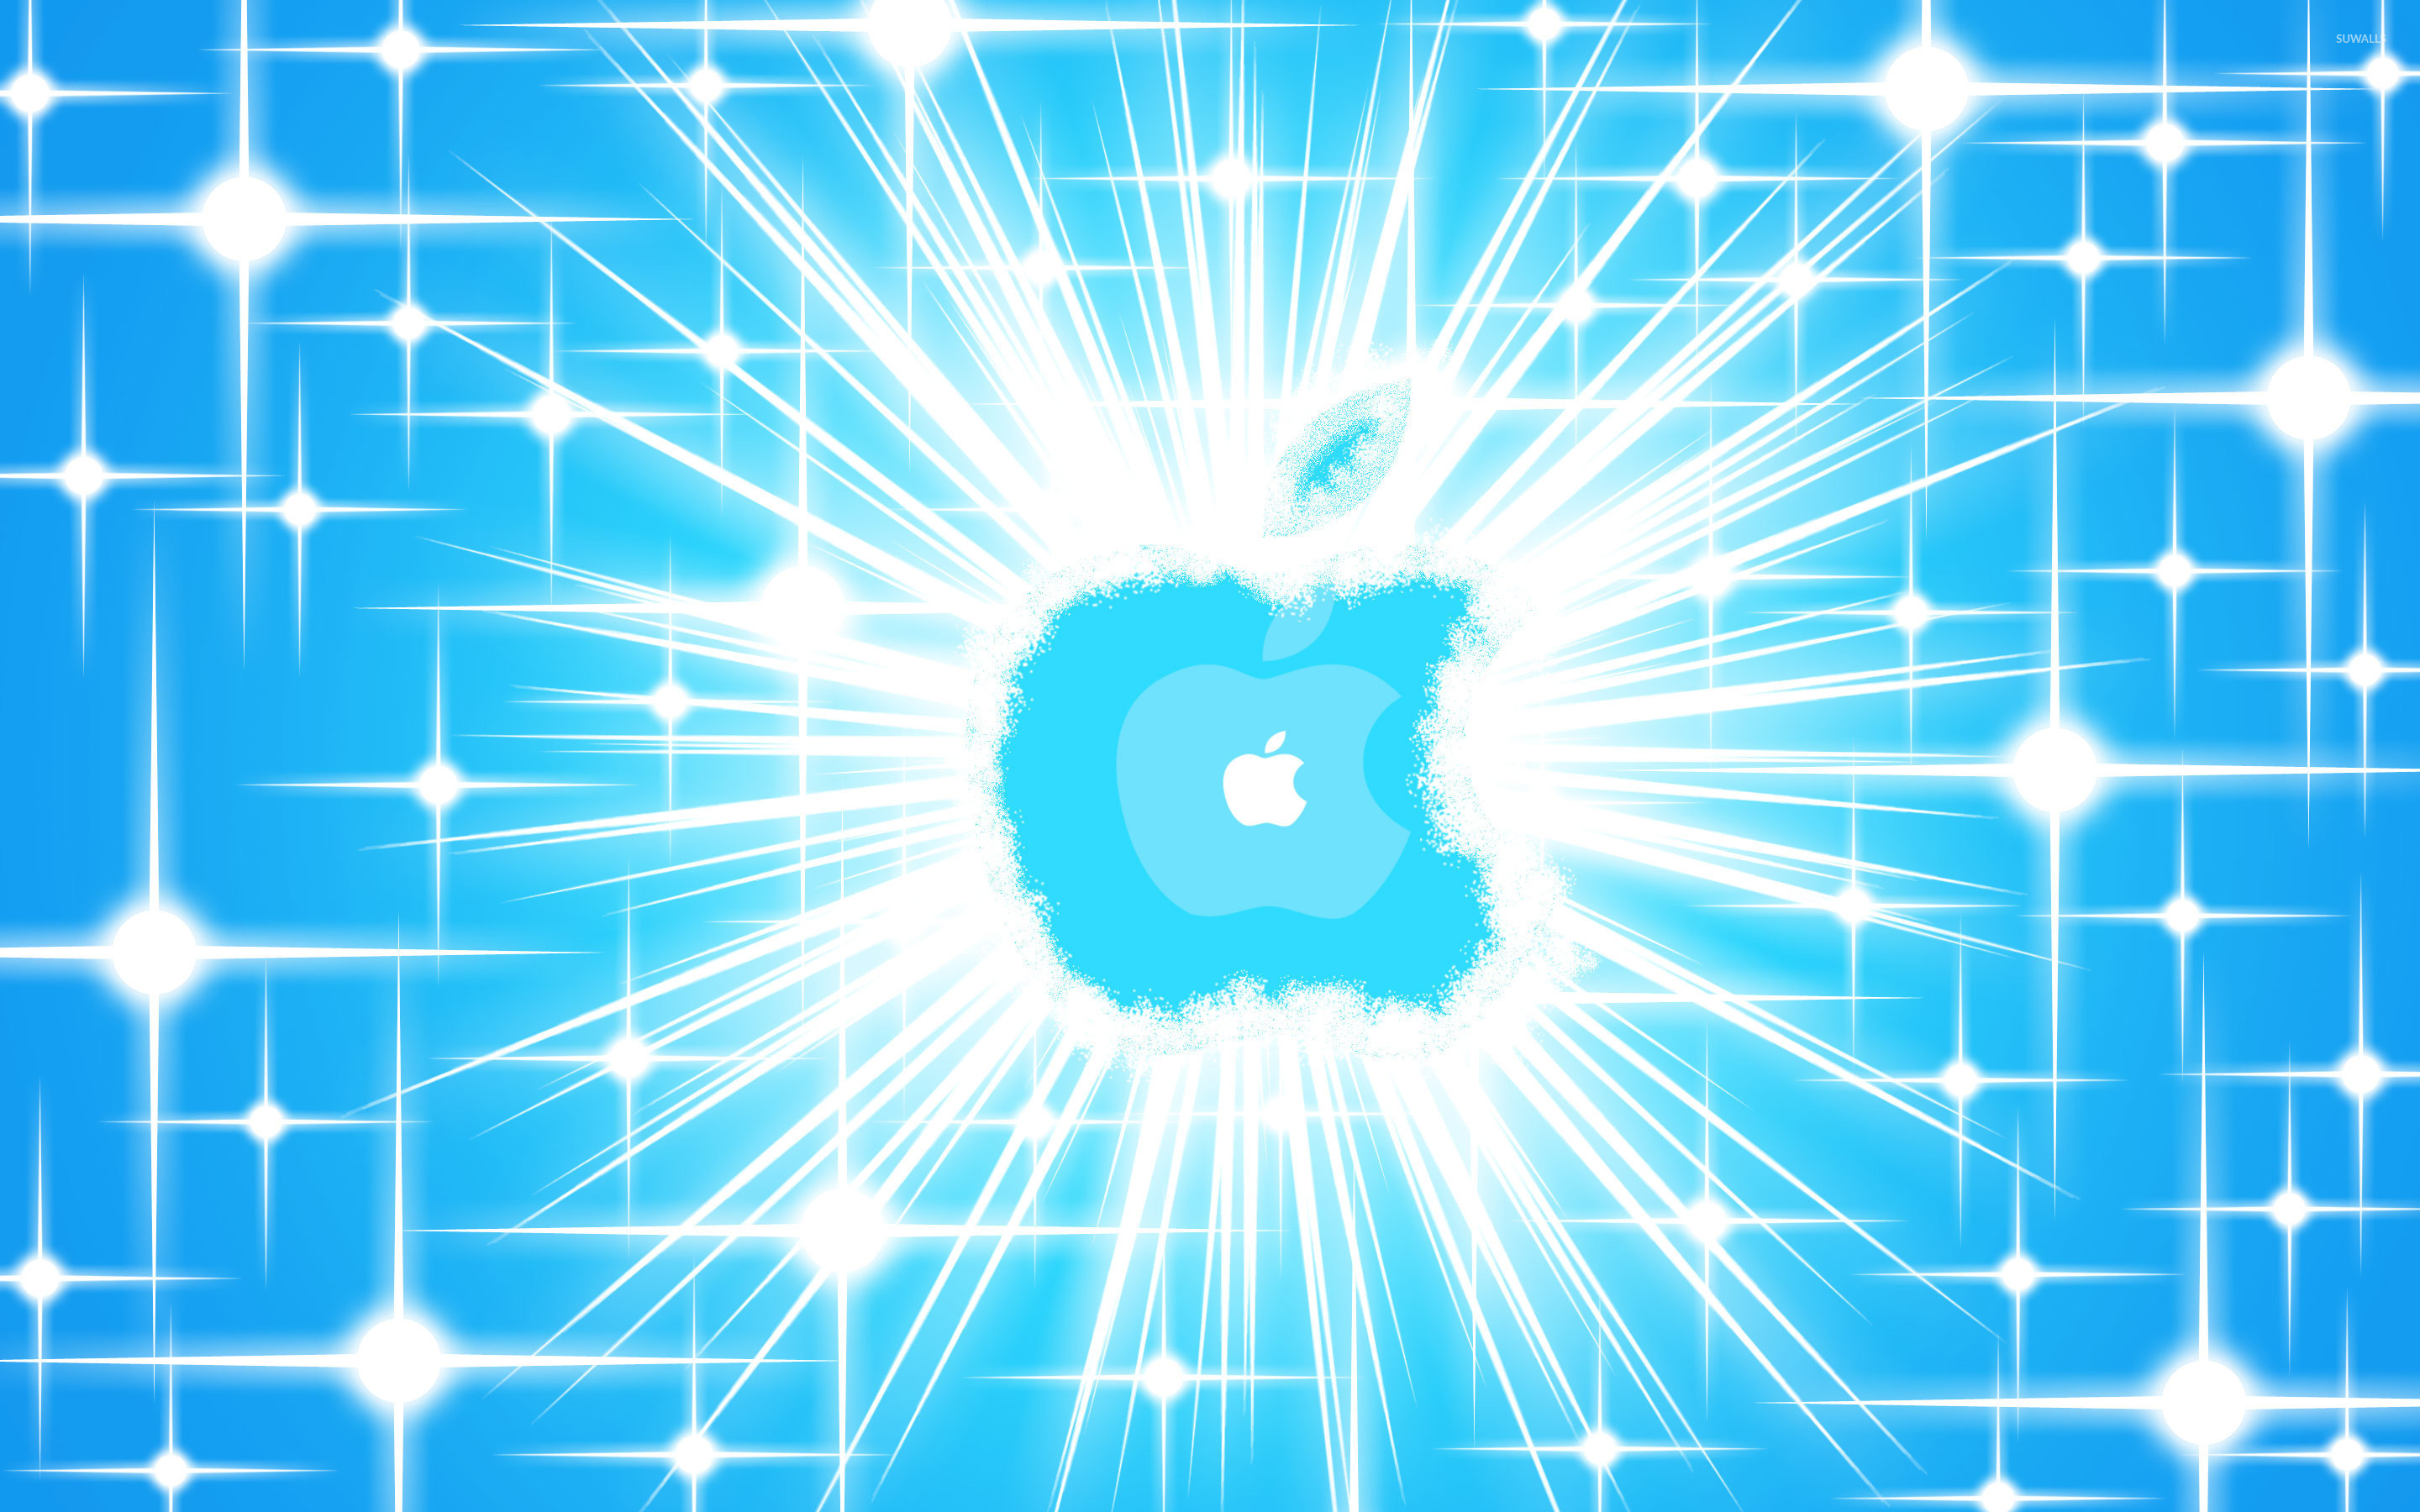 2880x1800 Glowing blue Apple logo wallpaper